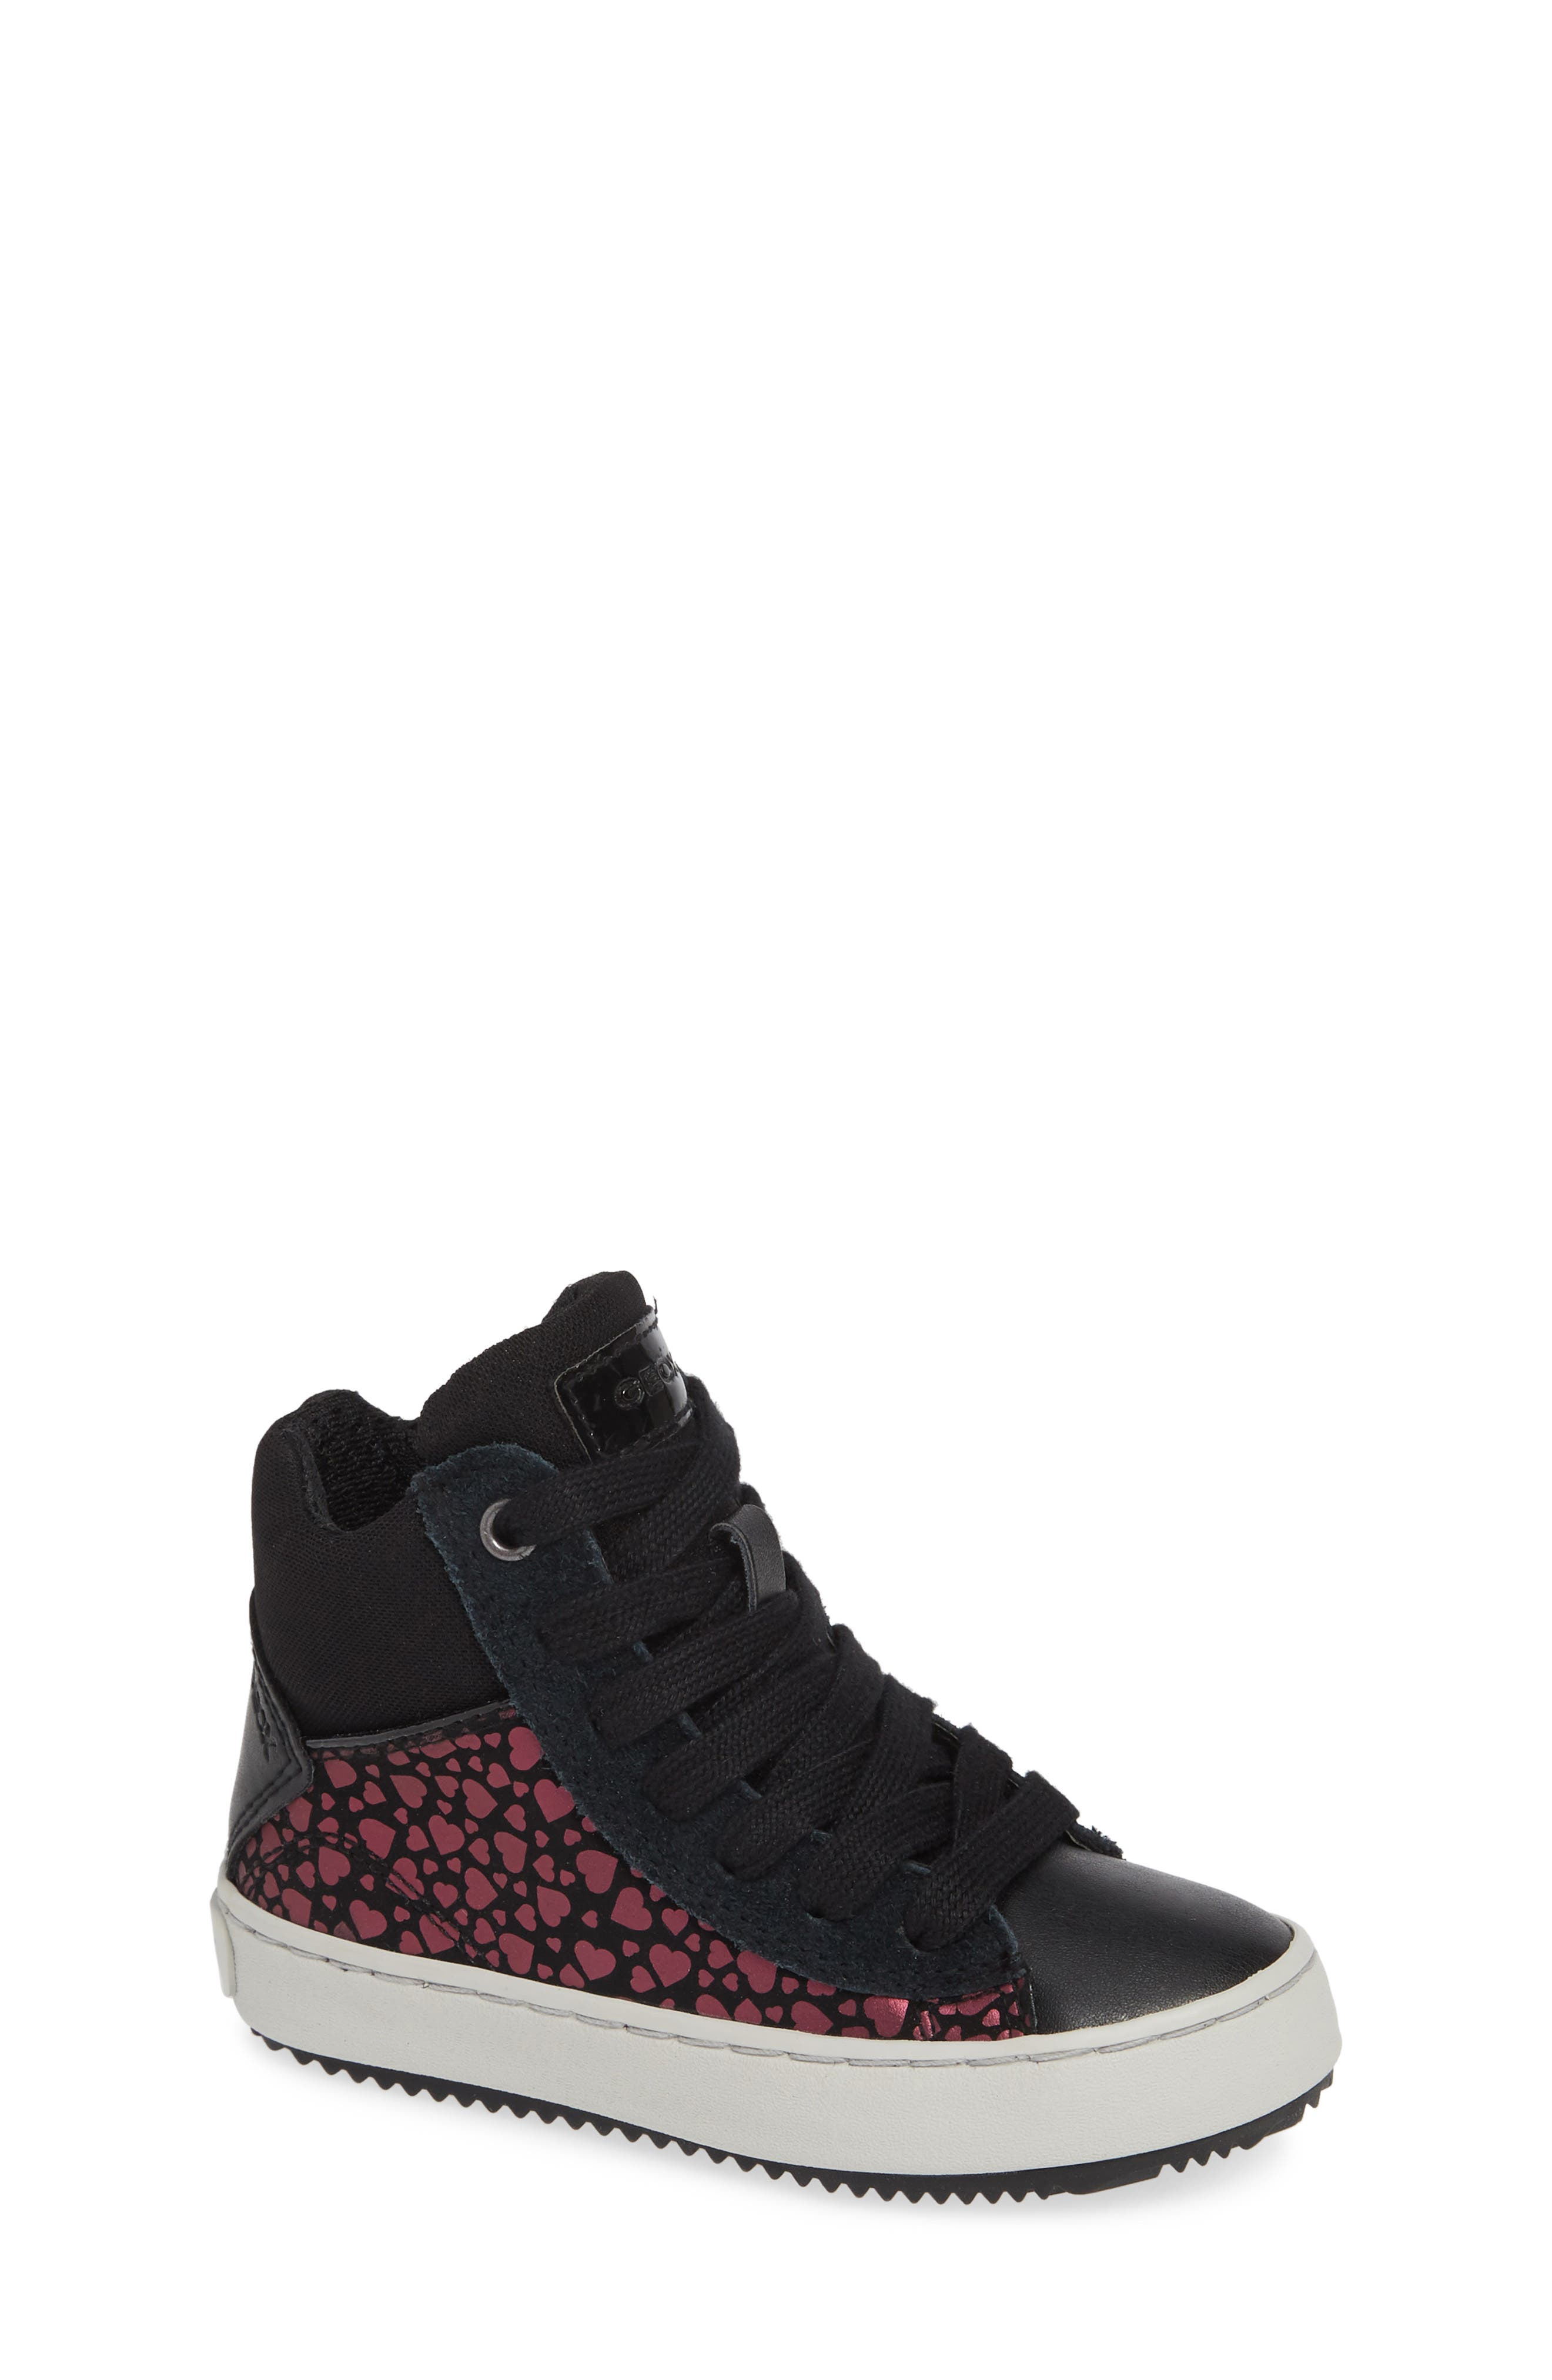 Kalispera High Top Sneaker,                         Main,                         color, BLACK